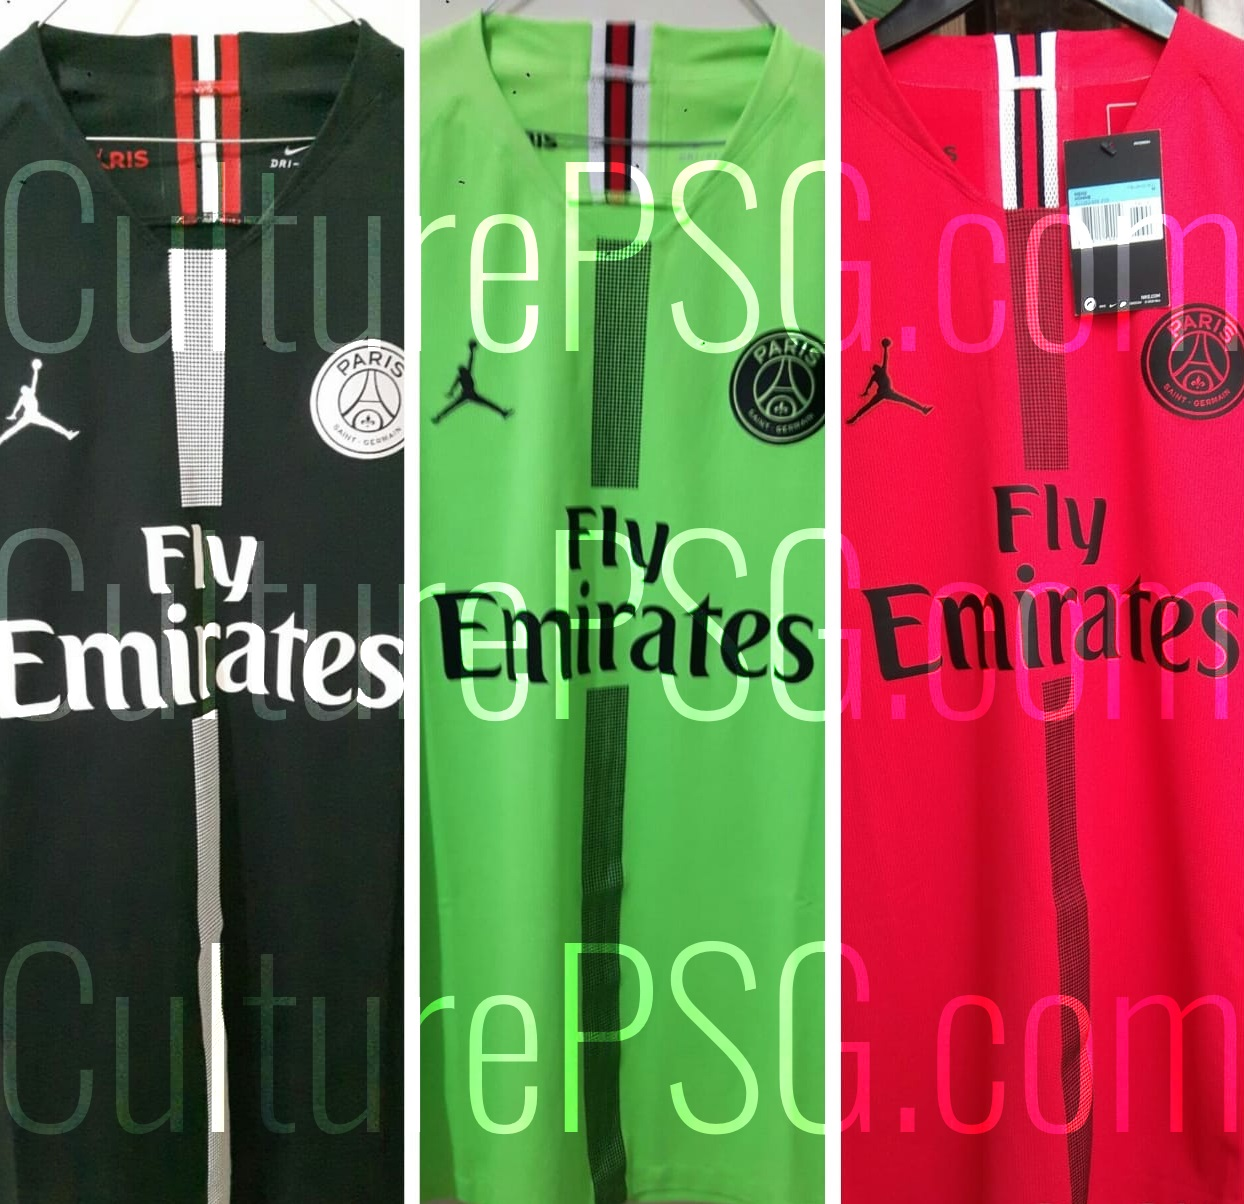 In addition to the goalkeeper uniforms ee3e99b8f37de